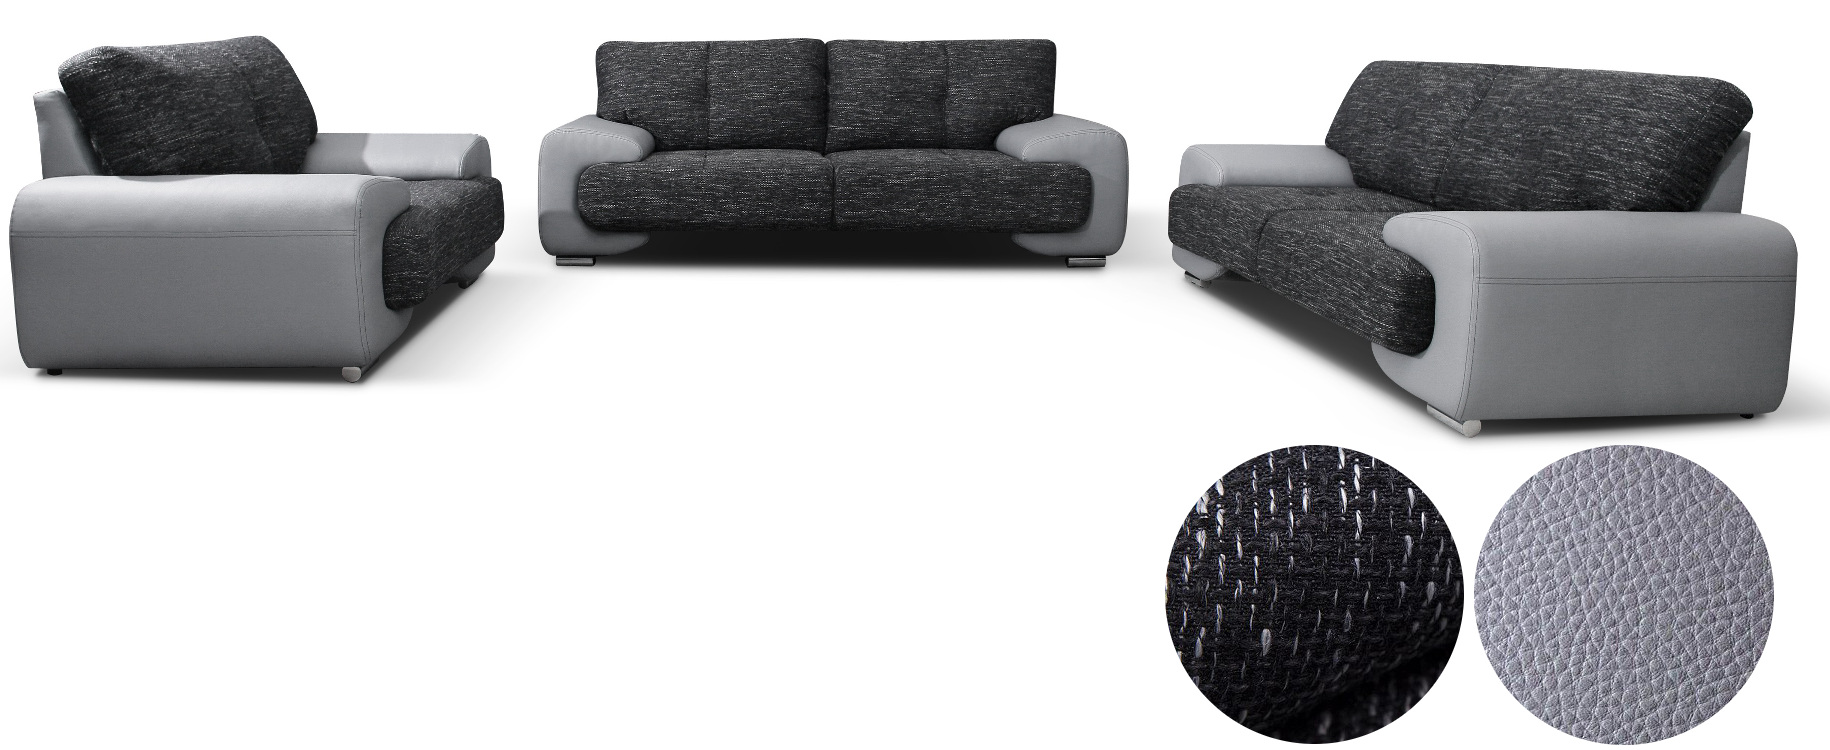 polstergarnitur sofa set couch 3er 2er sessel 3 2 1. Black Bedroom Furniture Sets. Home Design Ideas